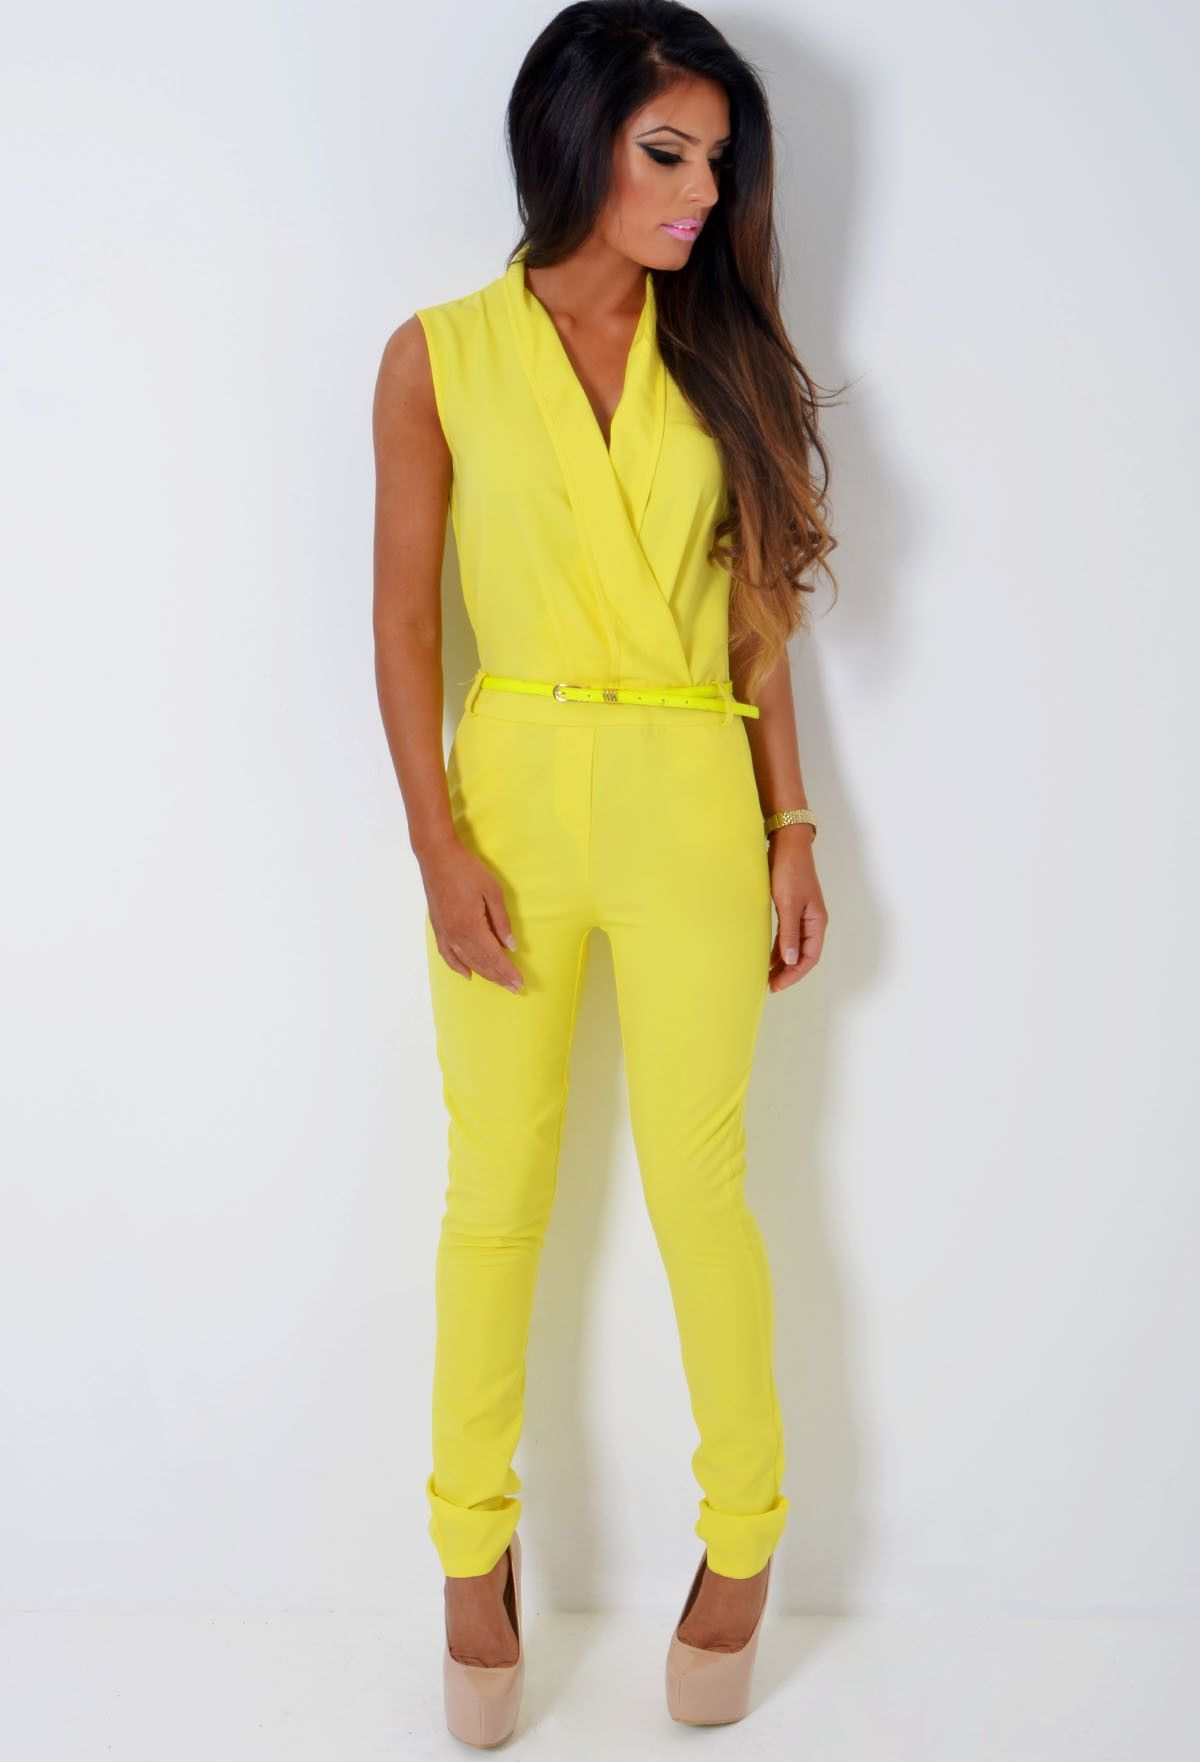 17 Best images about Jumpsuit on Pinterest | Rompers, Yellow ...